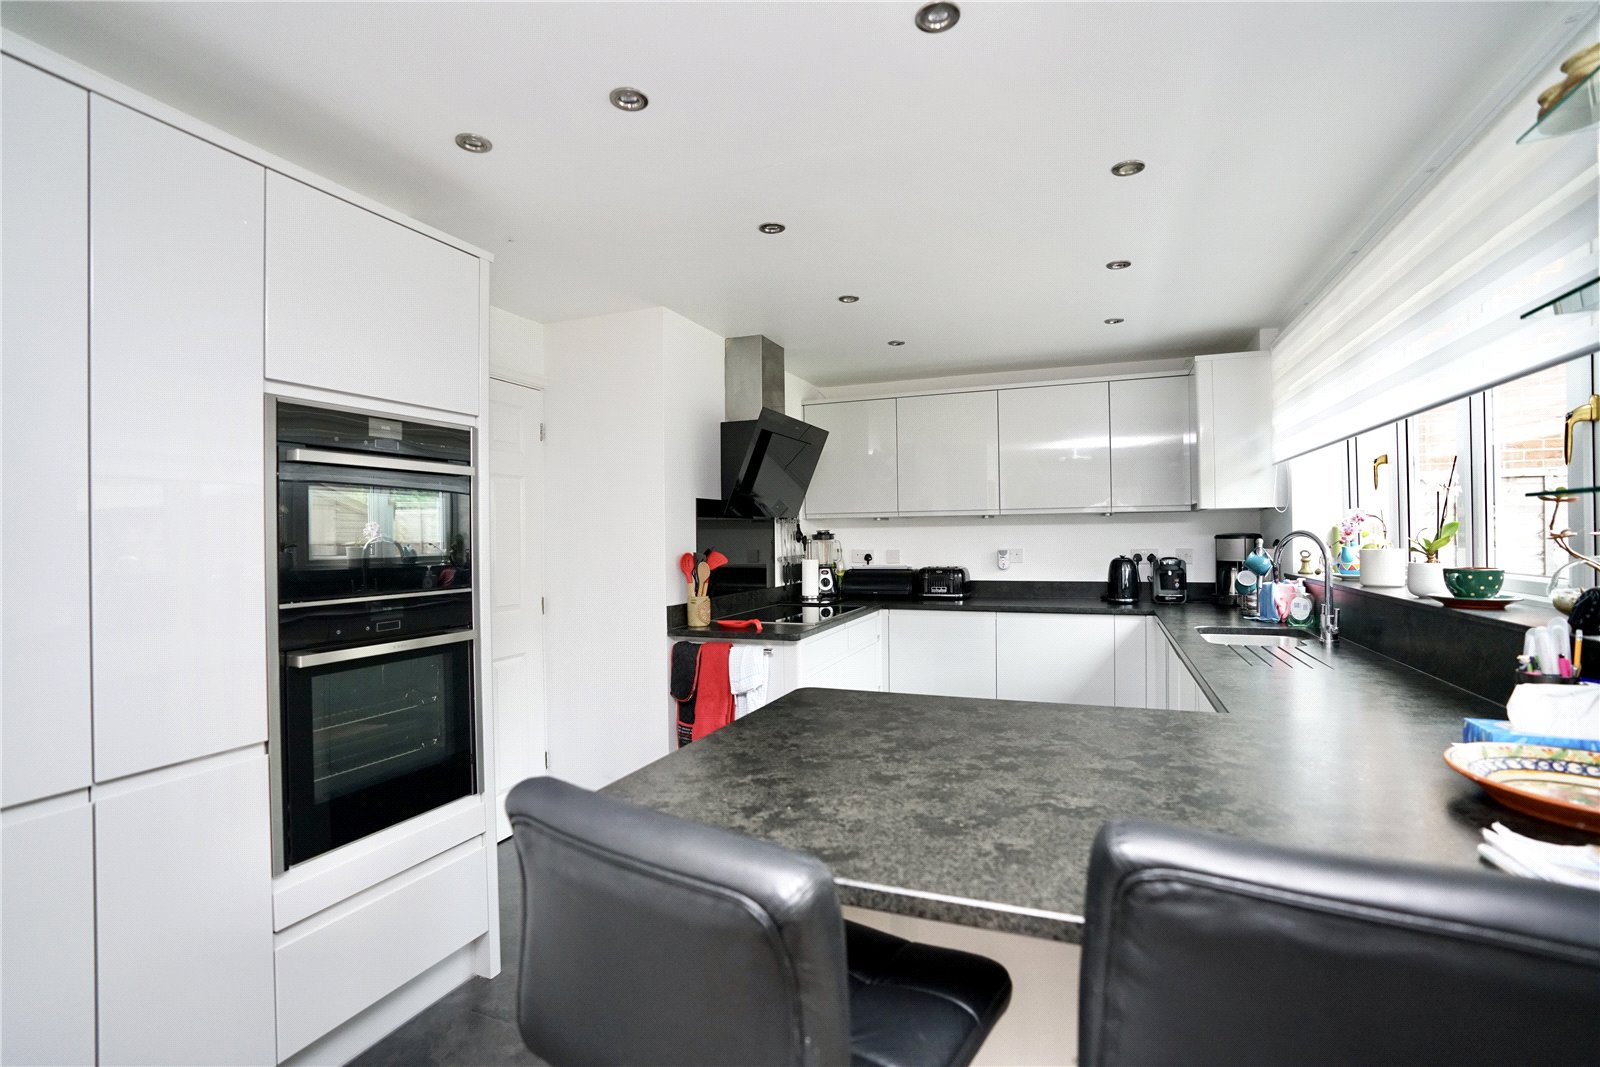 4 bed house for sale in Great Gransden 1